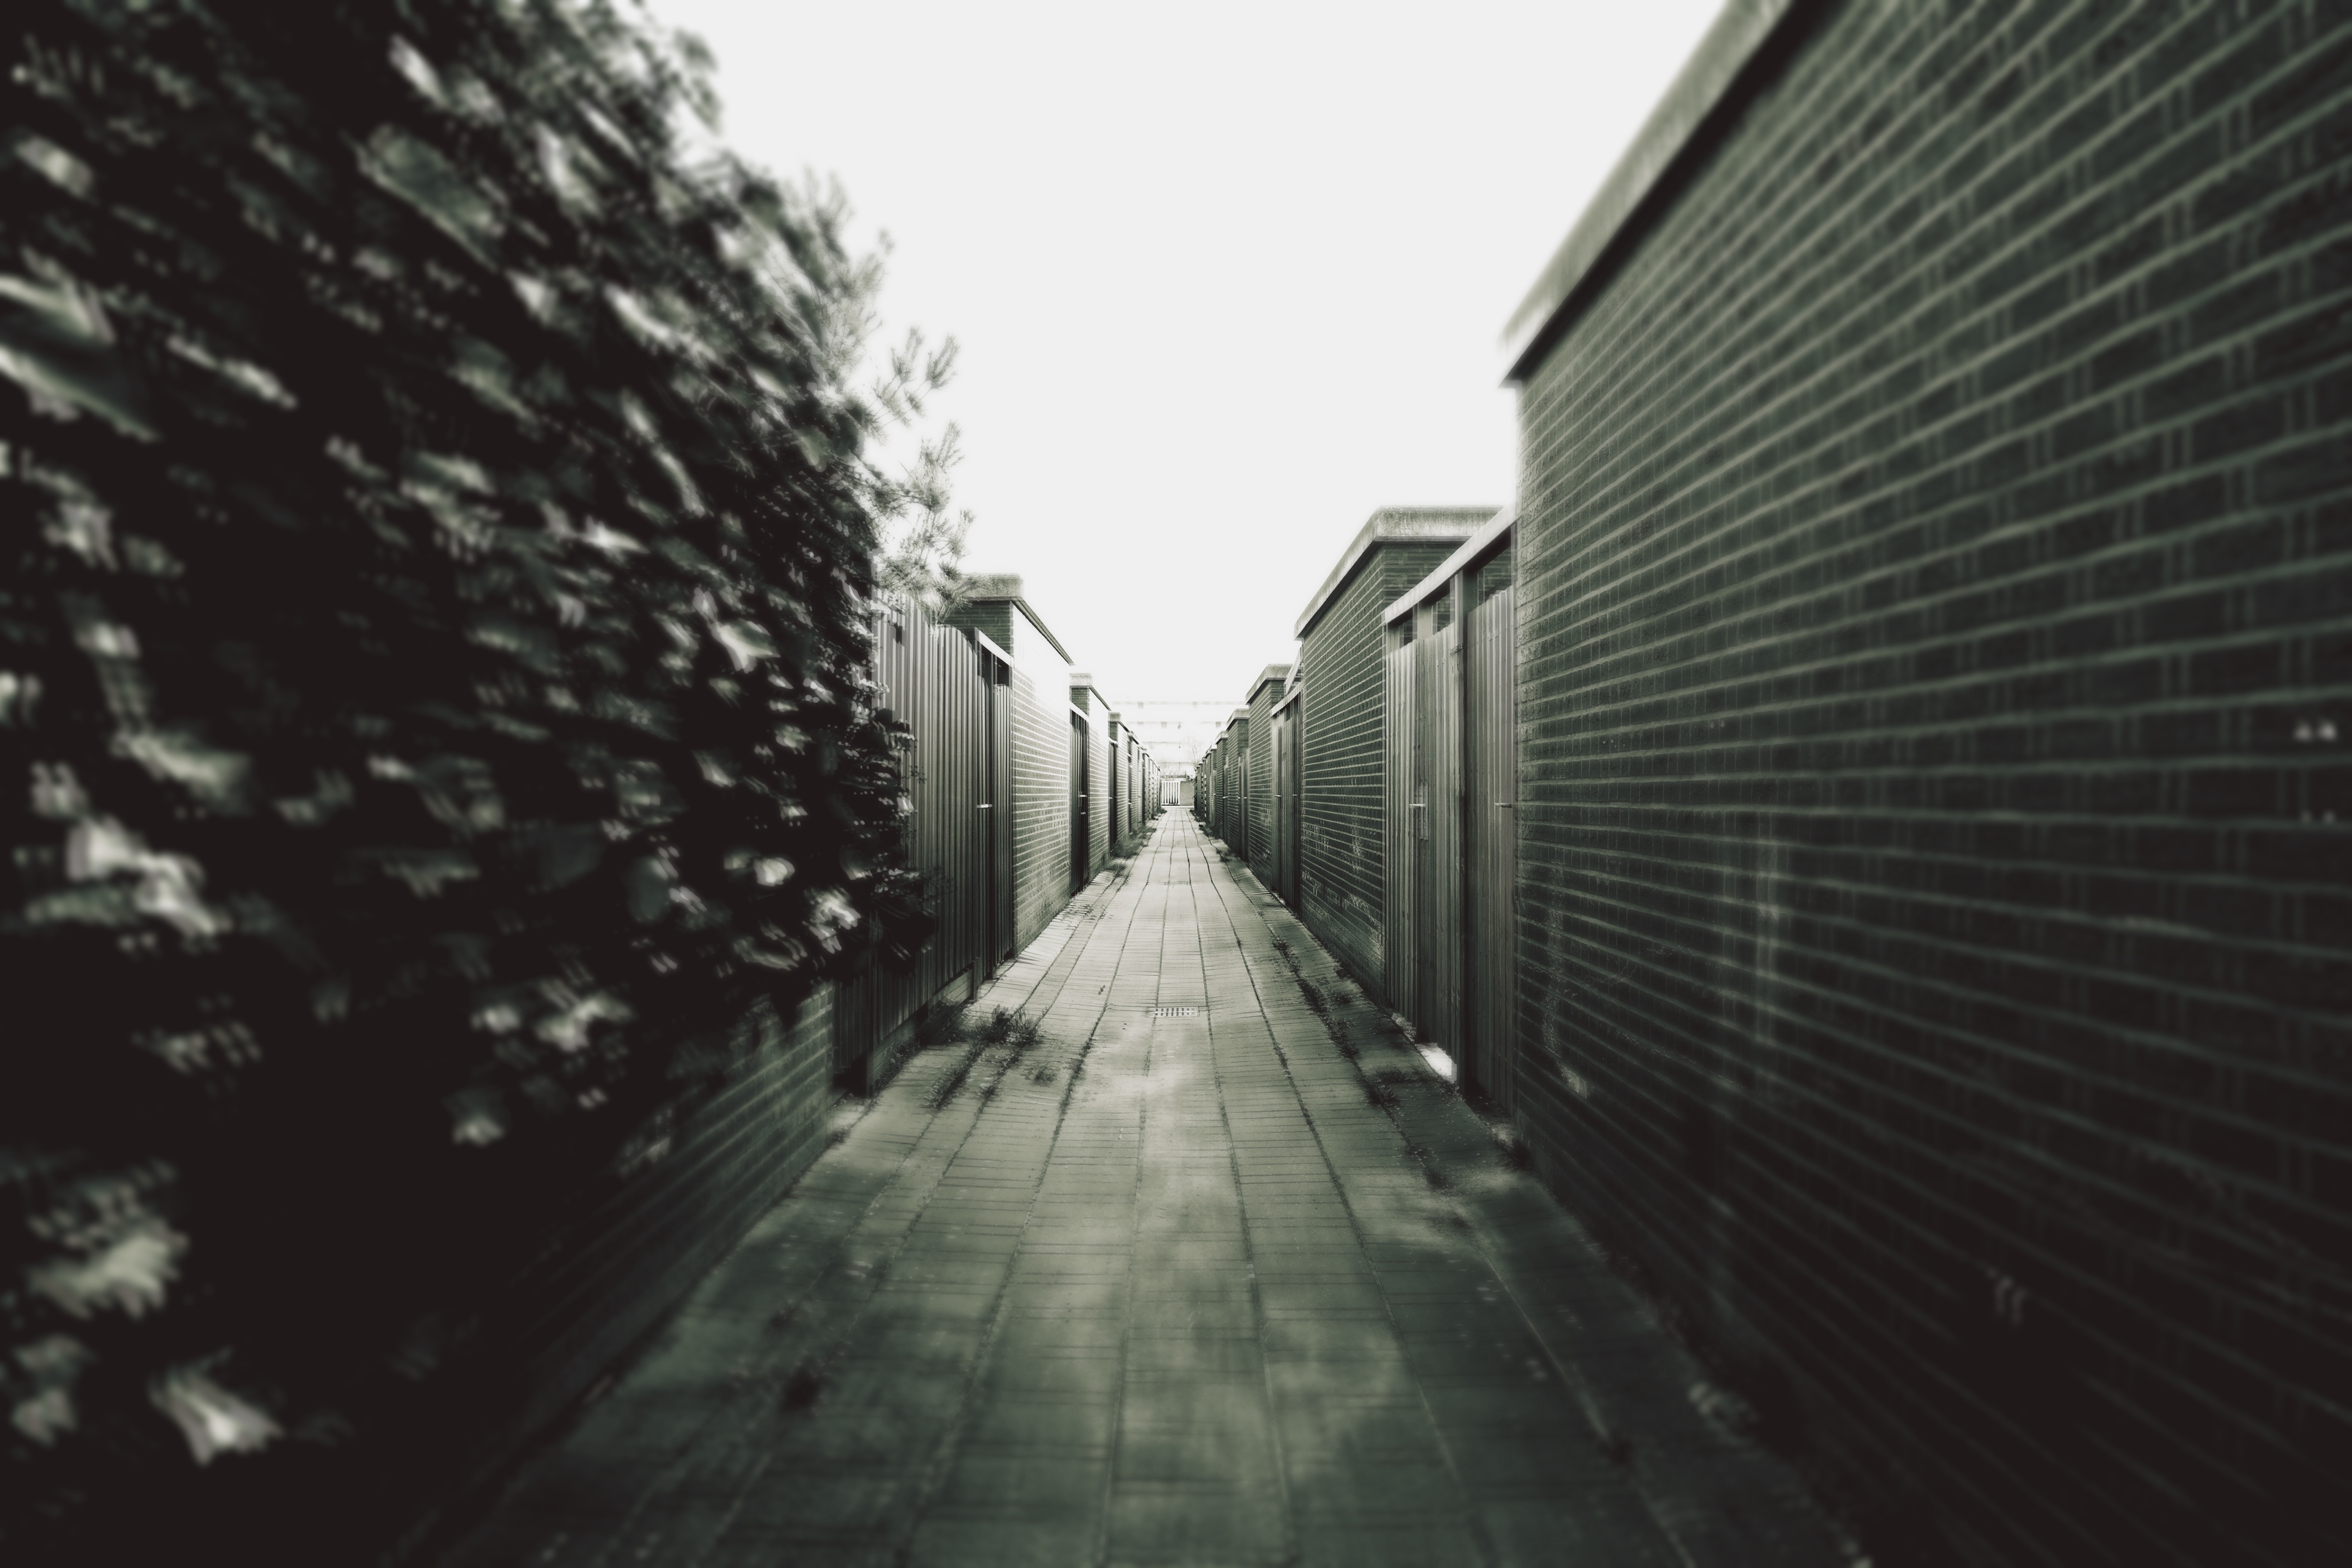 Grey Scale Photography of a Corridor, Alley, Black-and-white, Walls, HQ Photo